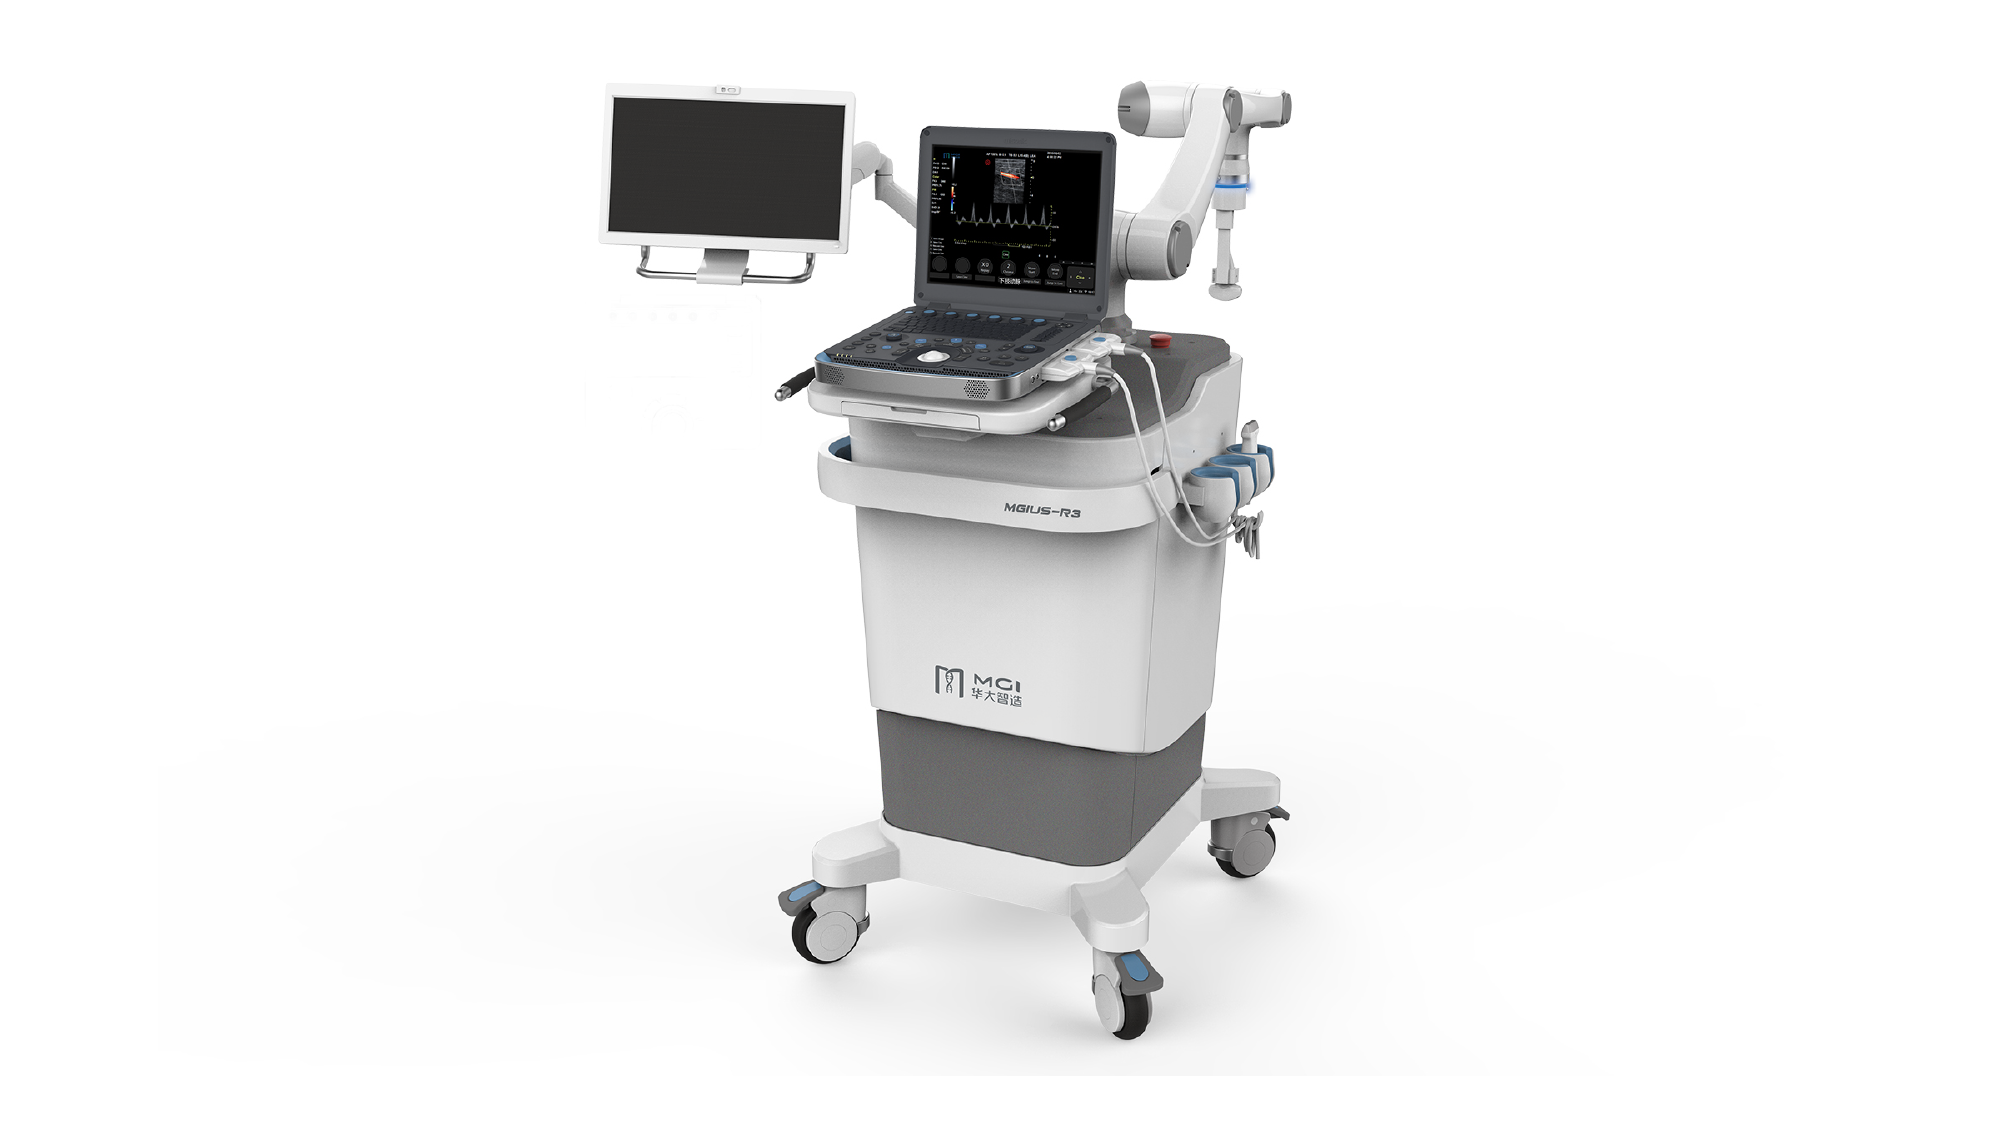 MGIUS-R3 the Robotic Ultrasound System Developed Independently